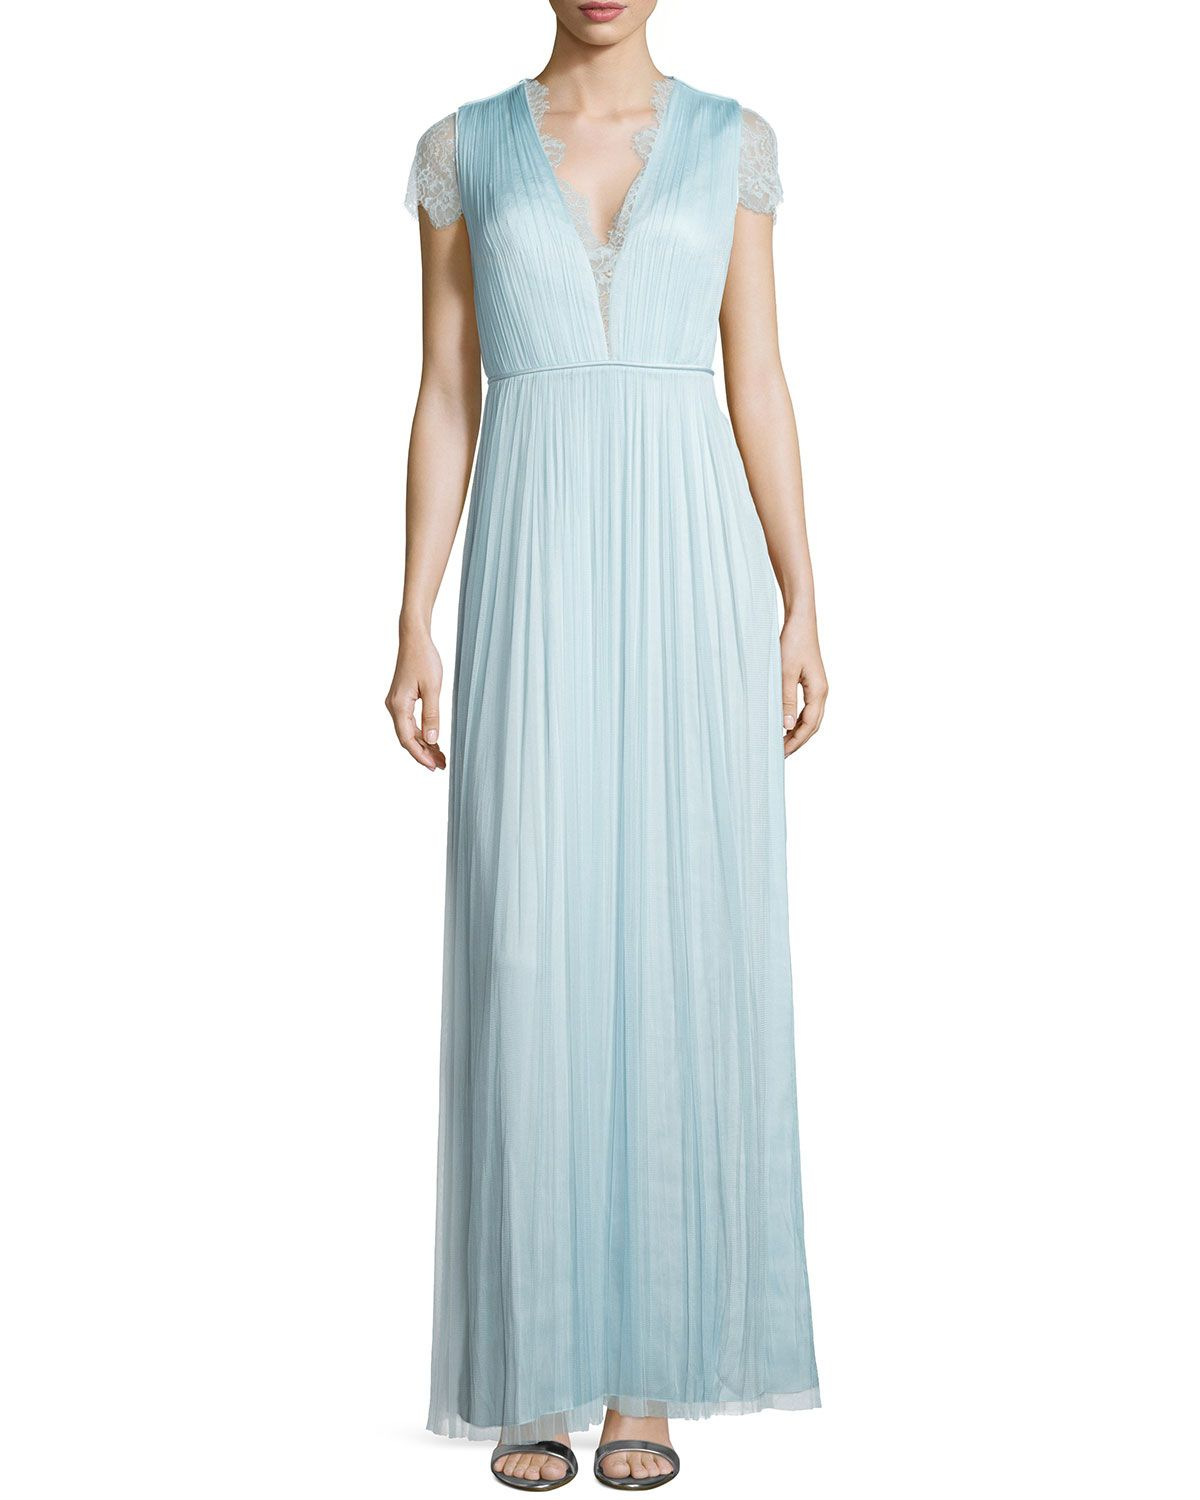 Short-Sleeve Lace Gown, Aqua Sky - Catherine Deane | *Neiman Marcus ...